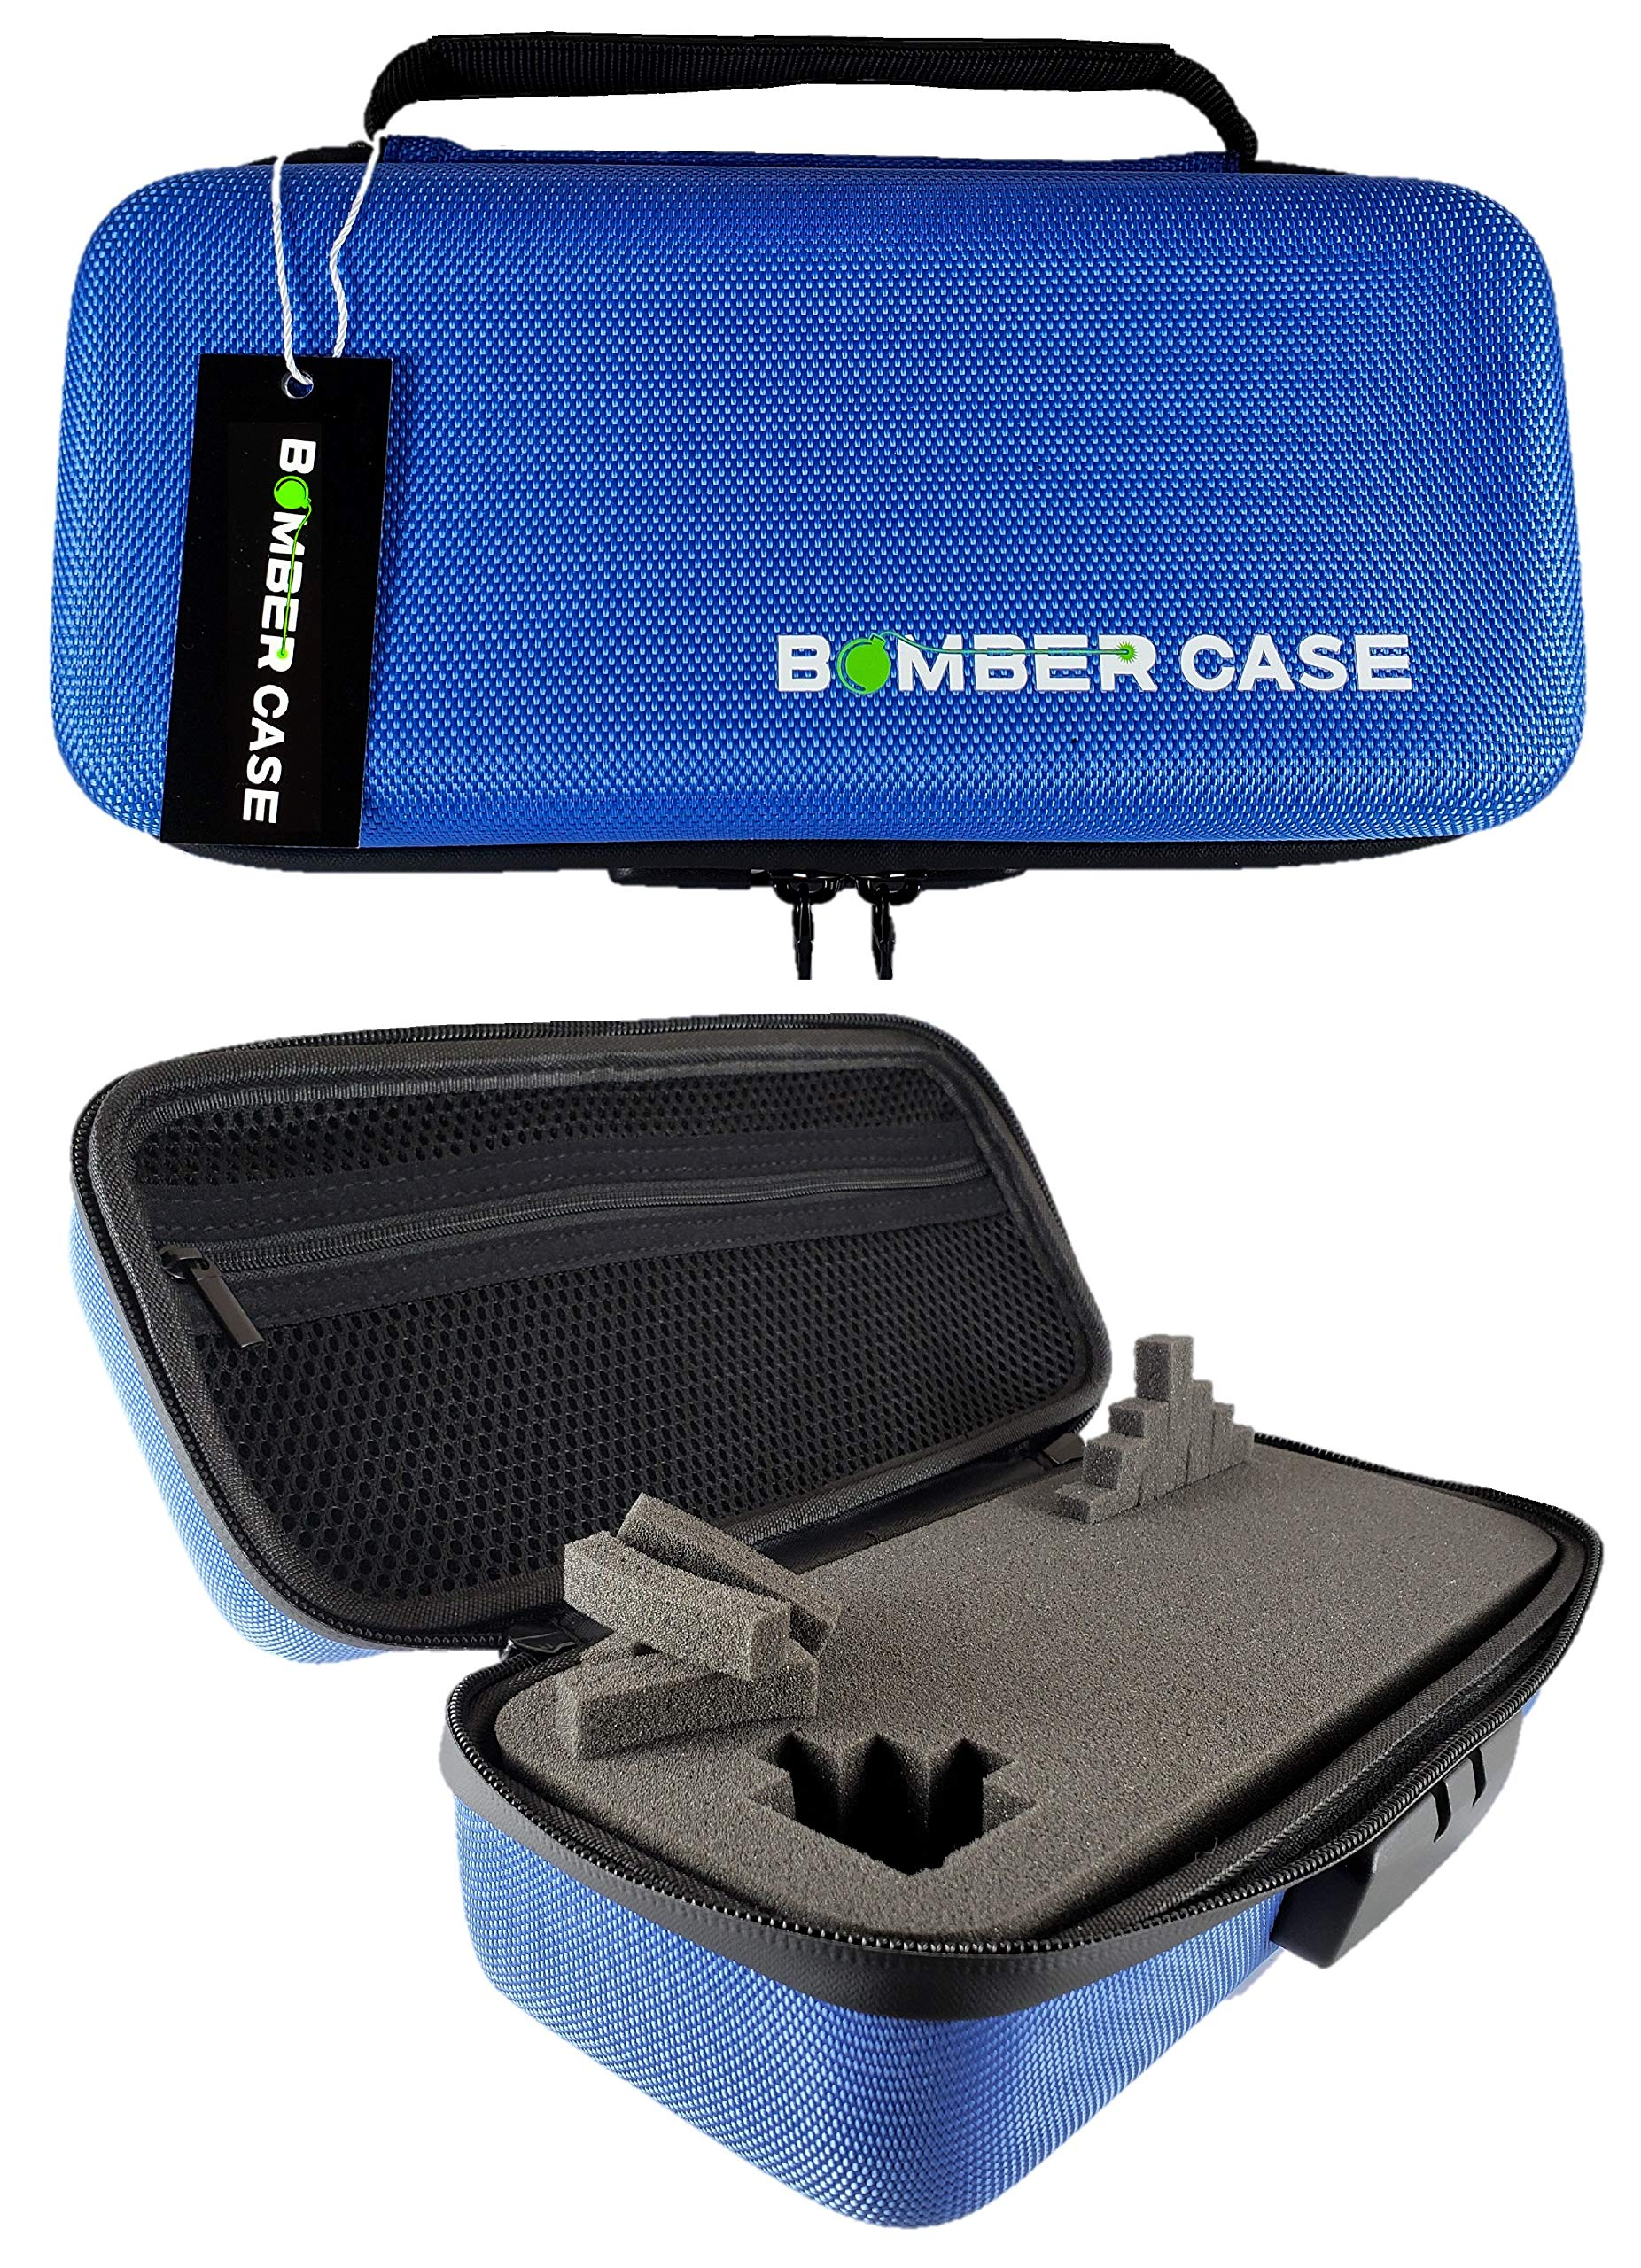 BOMBER CASE - Combination Lock Box - Smell Proof Case - Stash Case - Customizable Foam Interior - Flexible Construction and Odor Proof Zipper with Combo Lock - Safe Container - 9.5'' x 4'' x 3.5'' - Blue